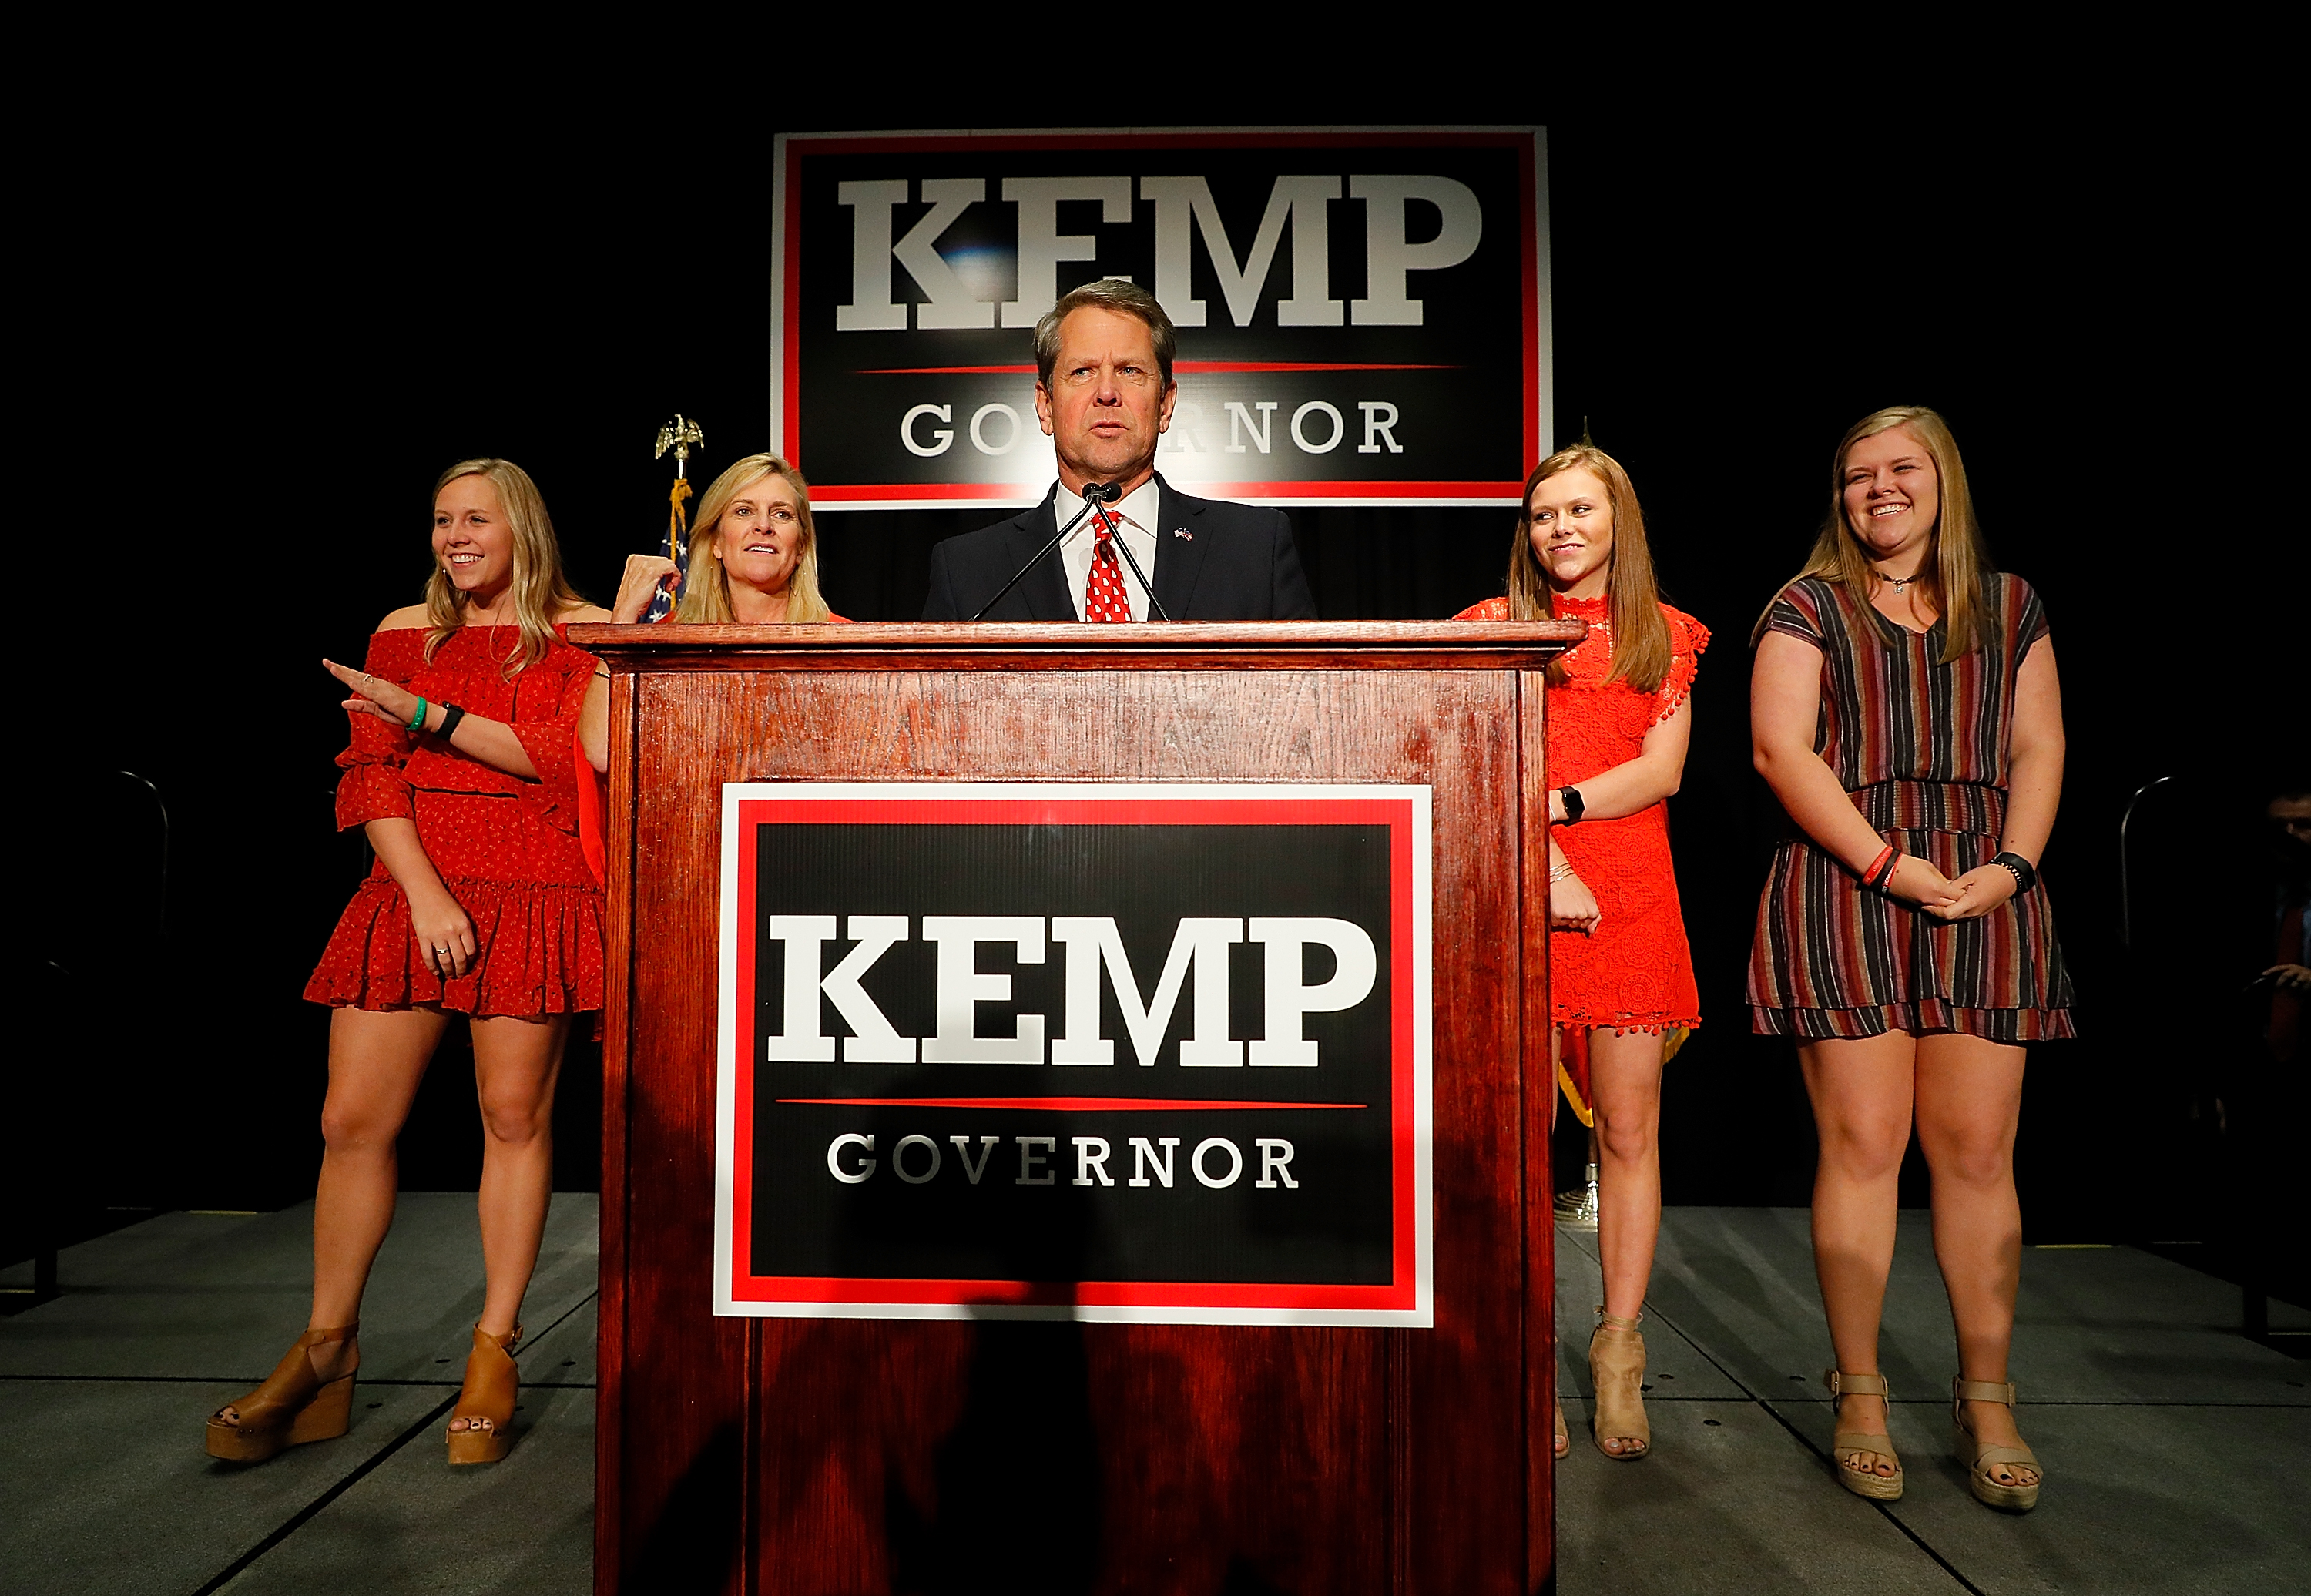 """Republican gubernatorial candidate Brian Kemp: """"It took the girls a little while to get ready tonight."""" (Kevin C. Cox/Getty Images)"""